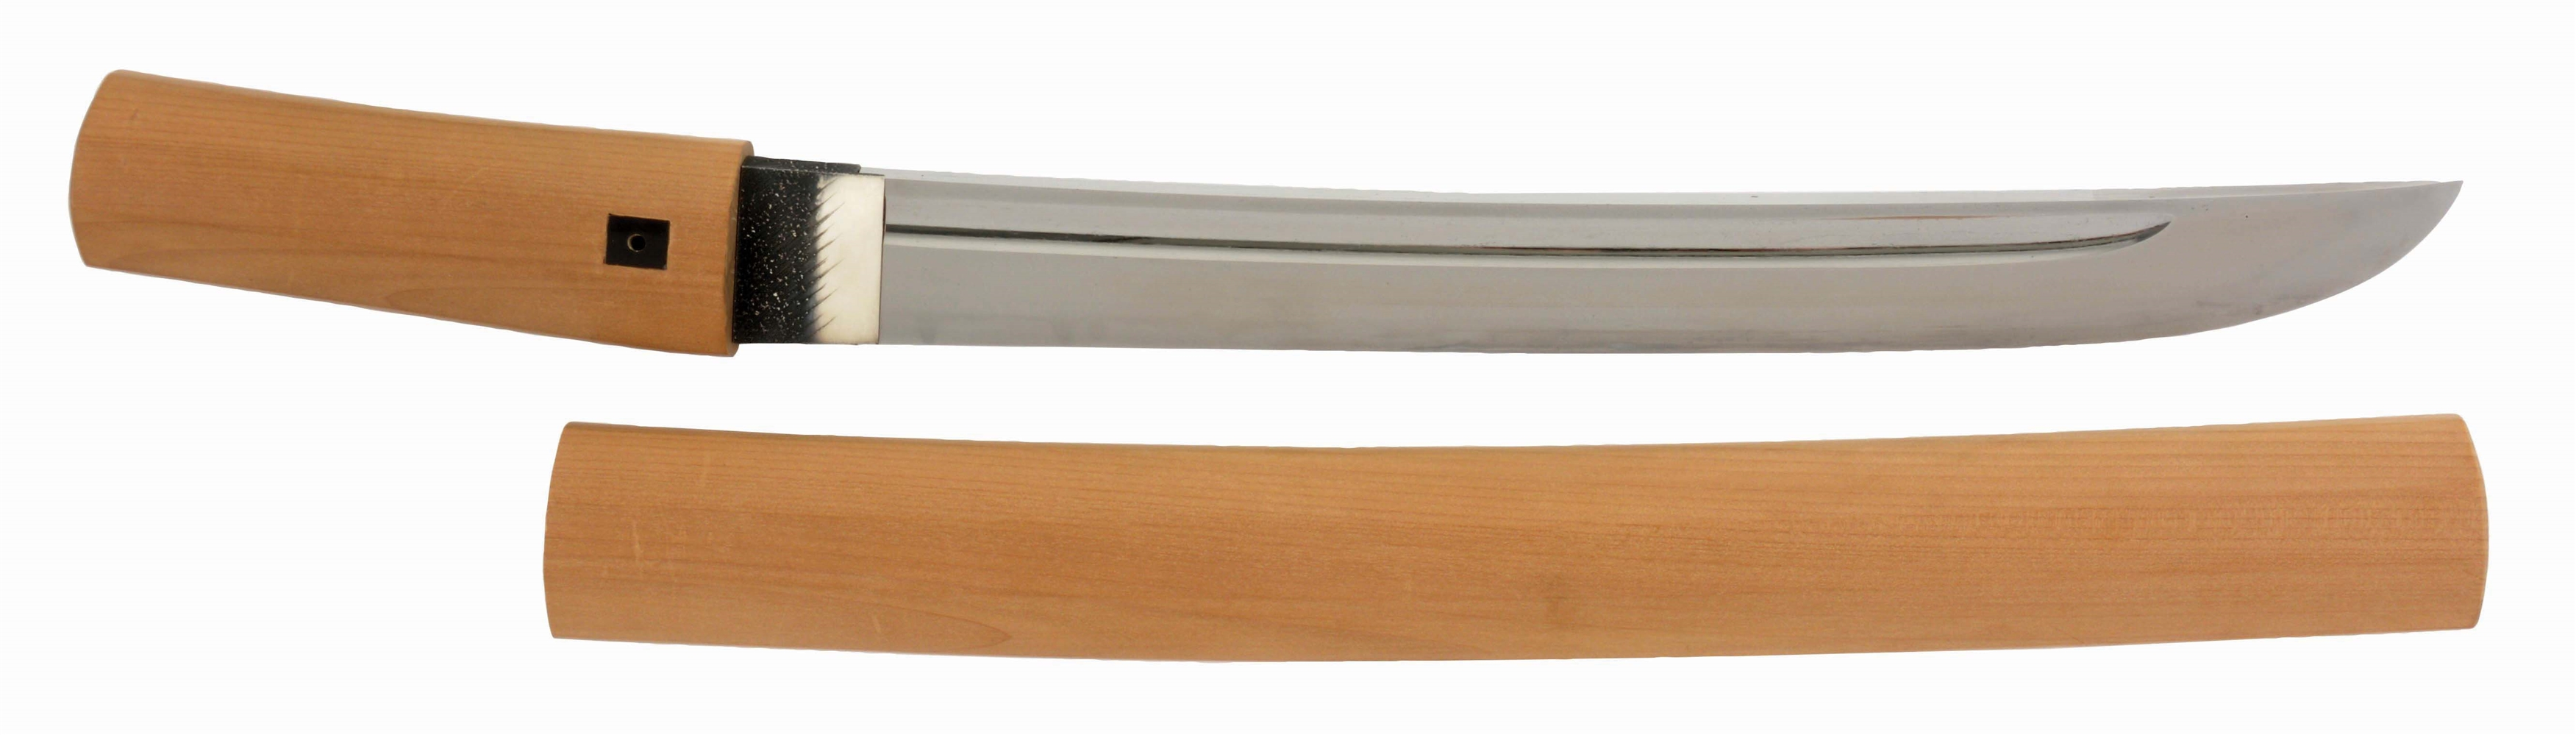 A MASSIVE AND MOST ATTRACTIVE SHINTO O-TANTO BY KANE TANE RATED CHU JOSAKU WITH NBTHK PAPER.